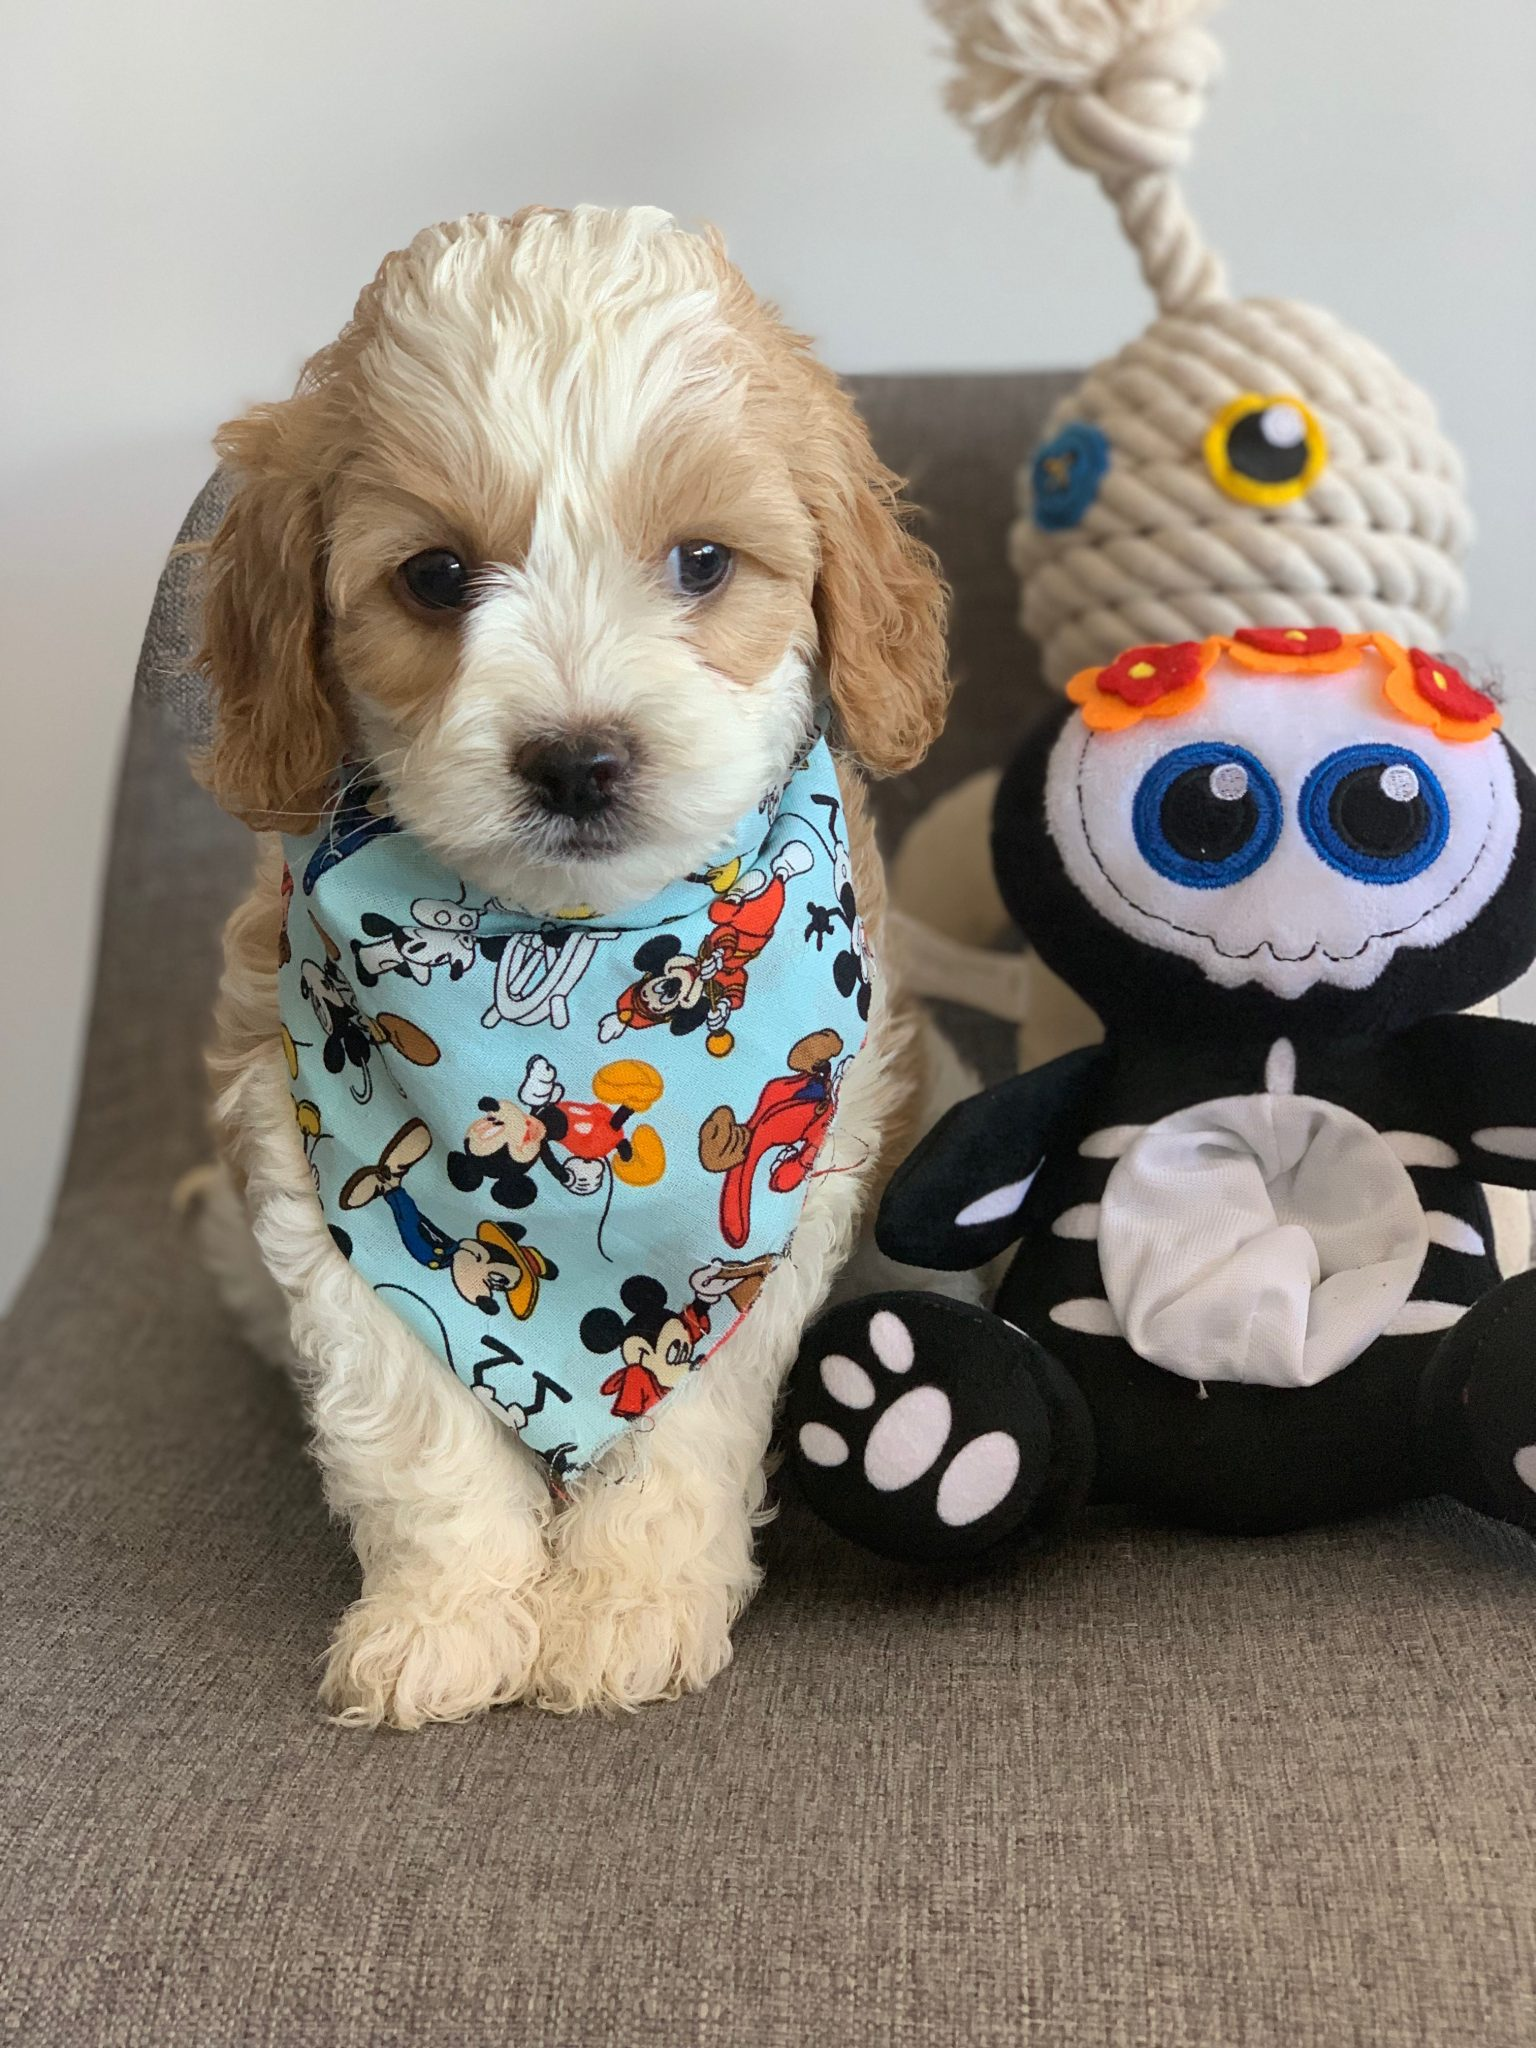 Cavoodle toy